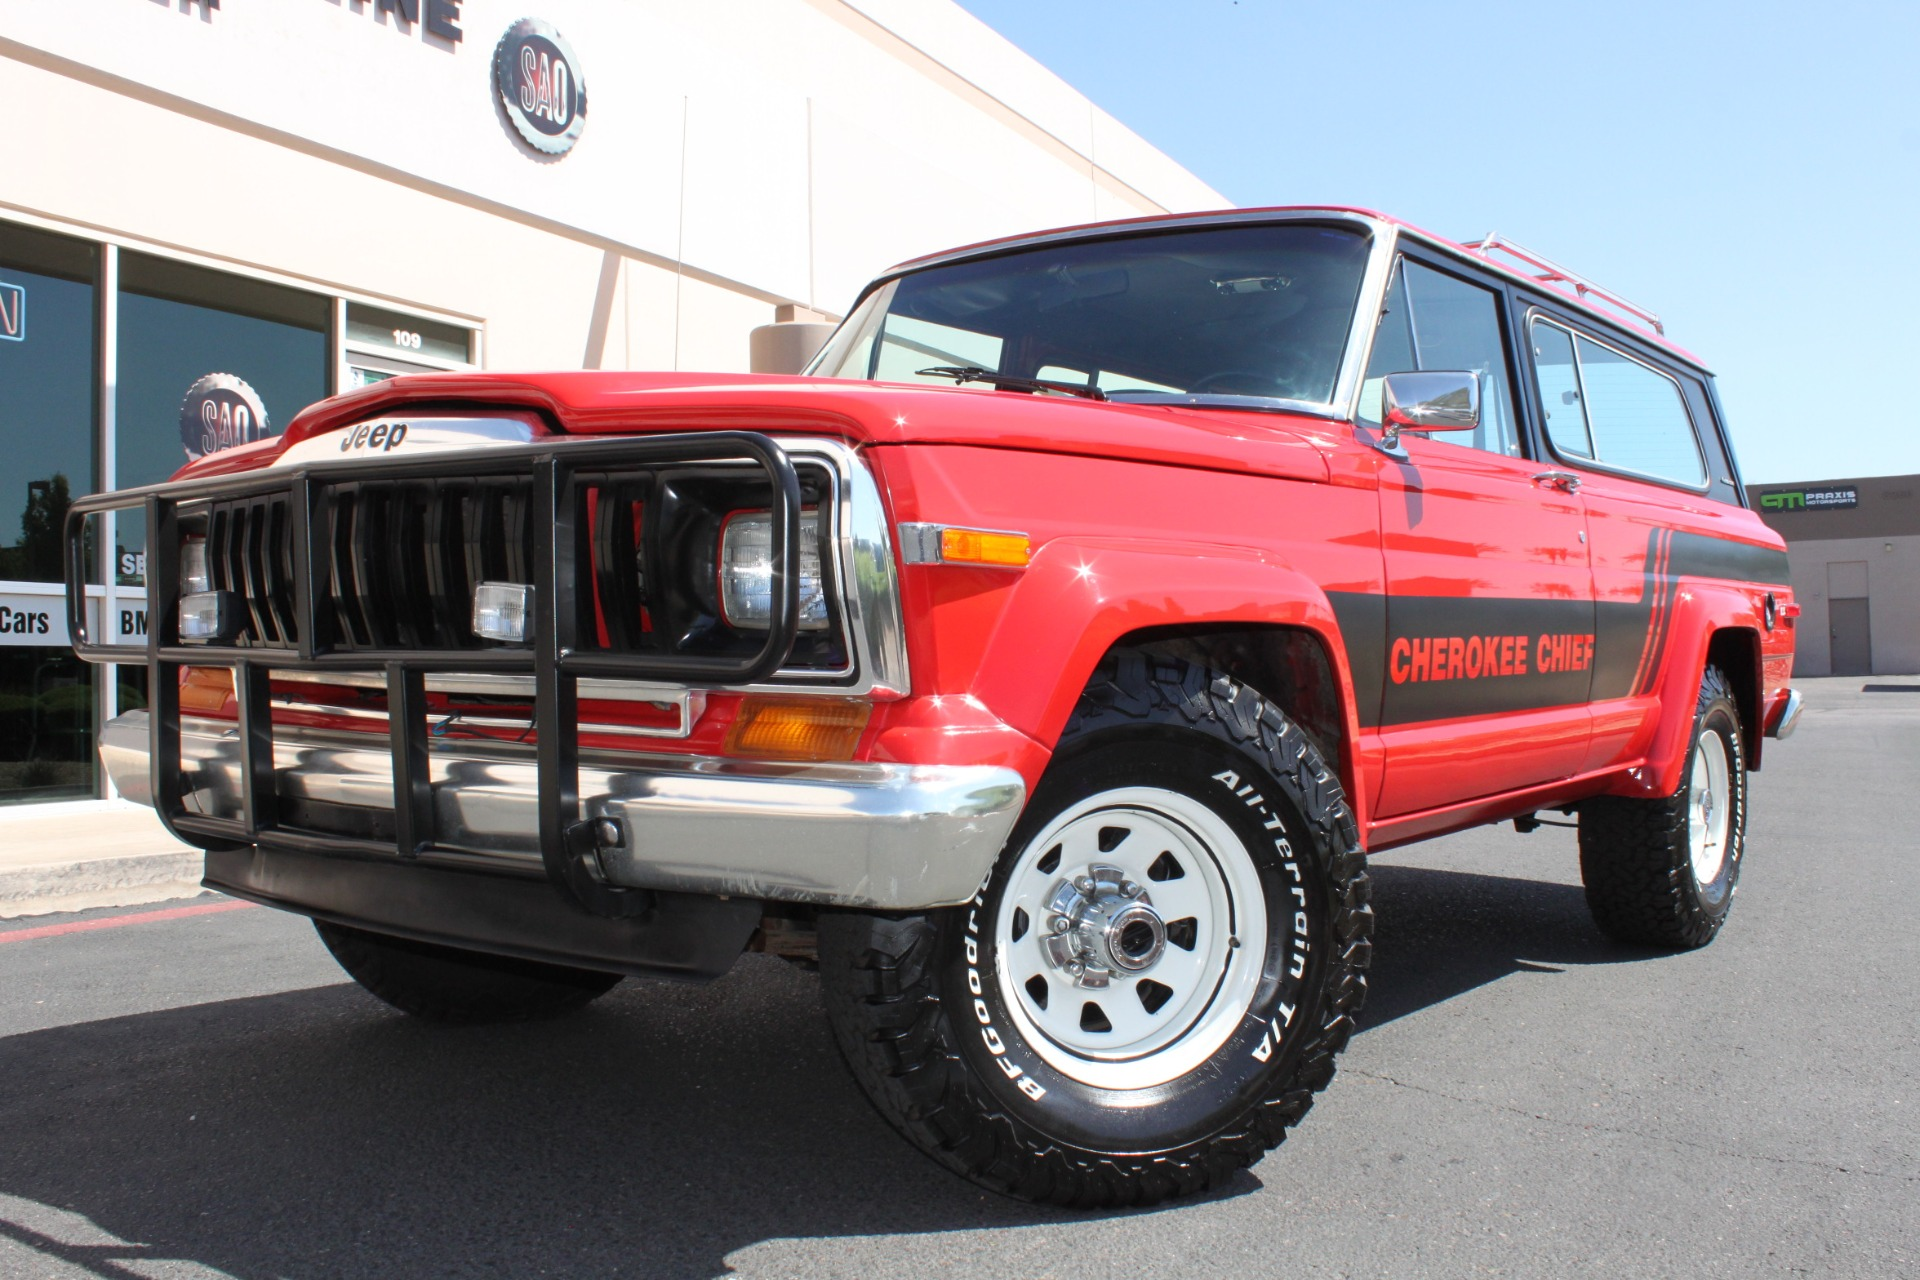 Used 1983 Jeep Cherokee <span>Chief 4WD</span> | Scottsdale, AZ